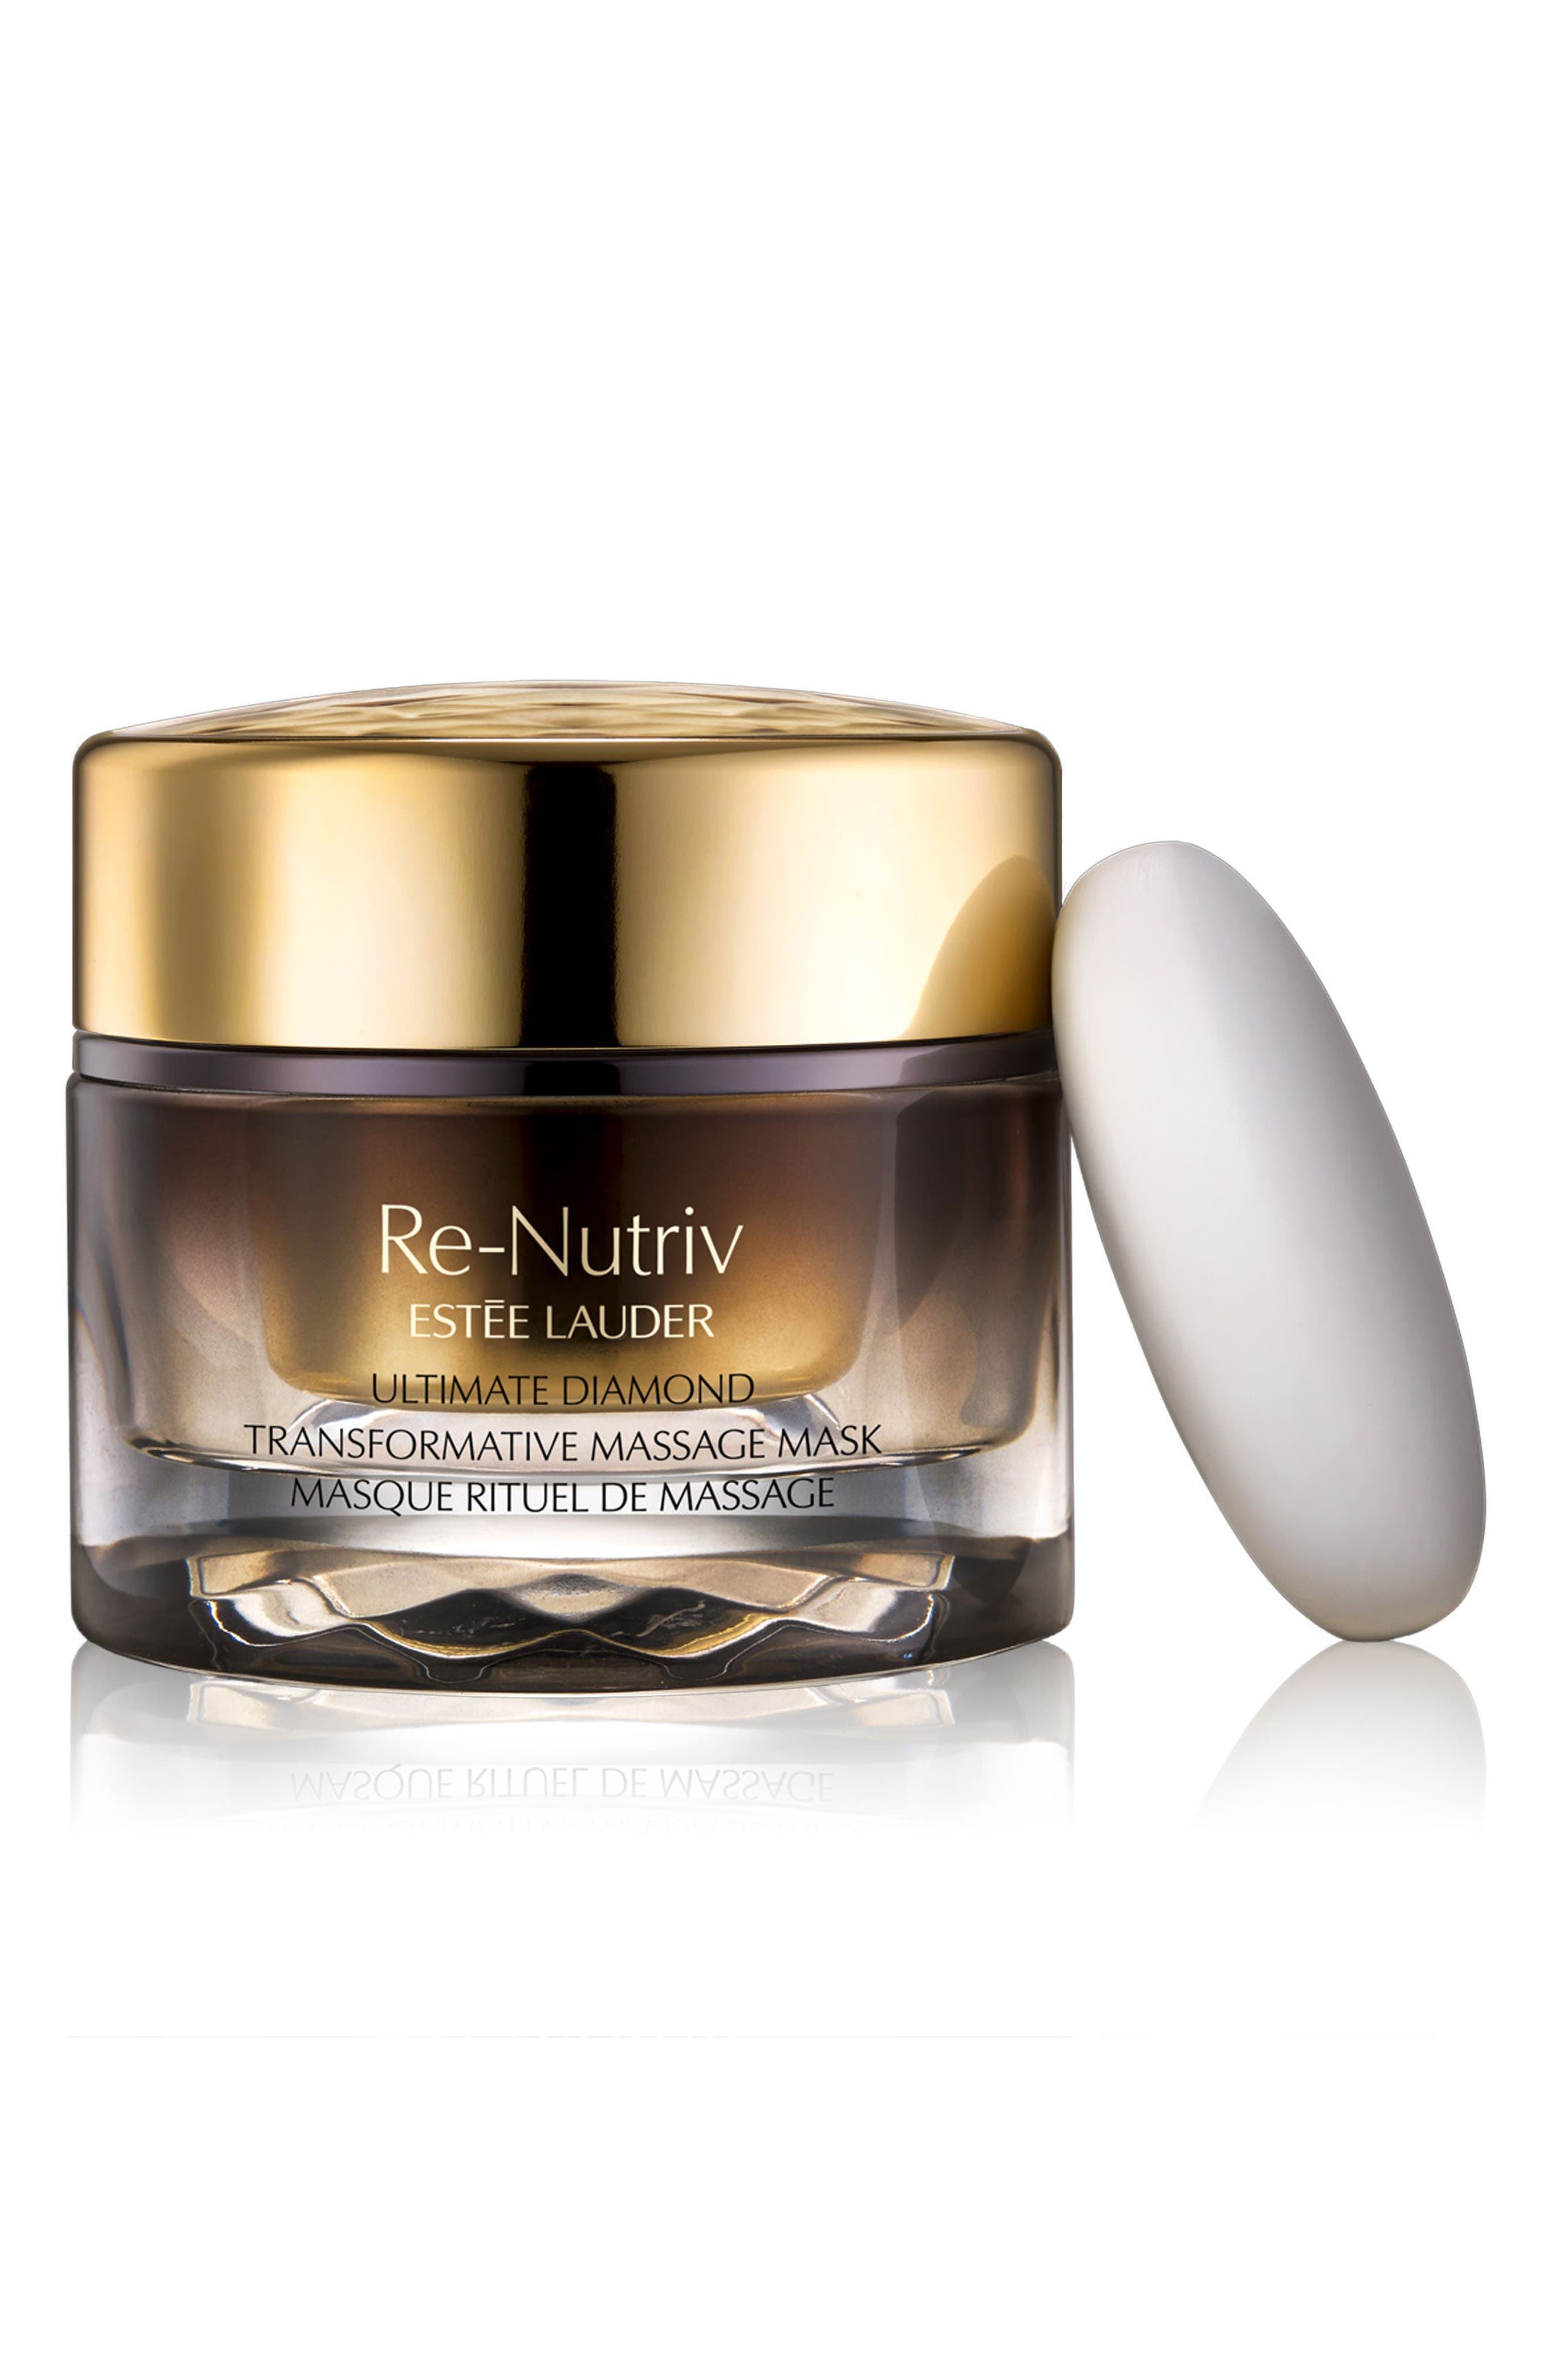 Re-Nutriv Ultimate Diamond Transformative Thermal Ritual,                             Main thumbnail 1, color,                             No Color